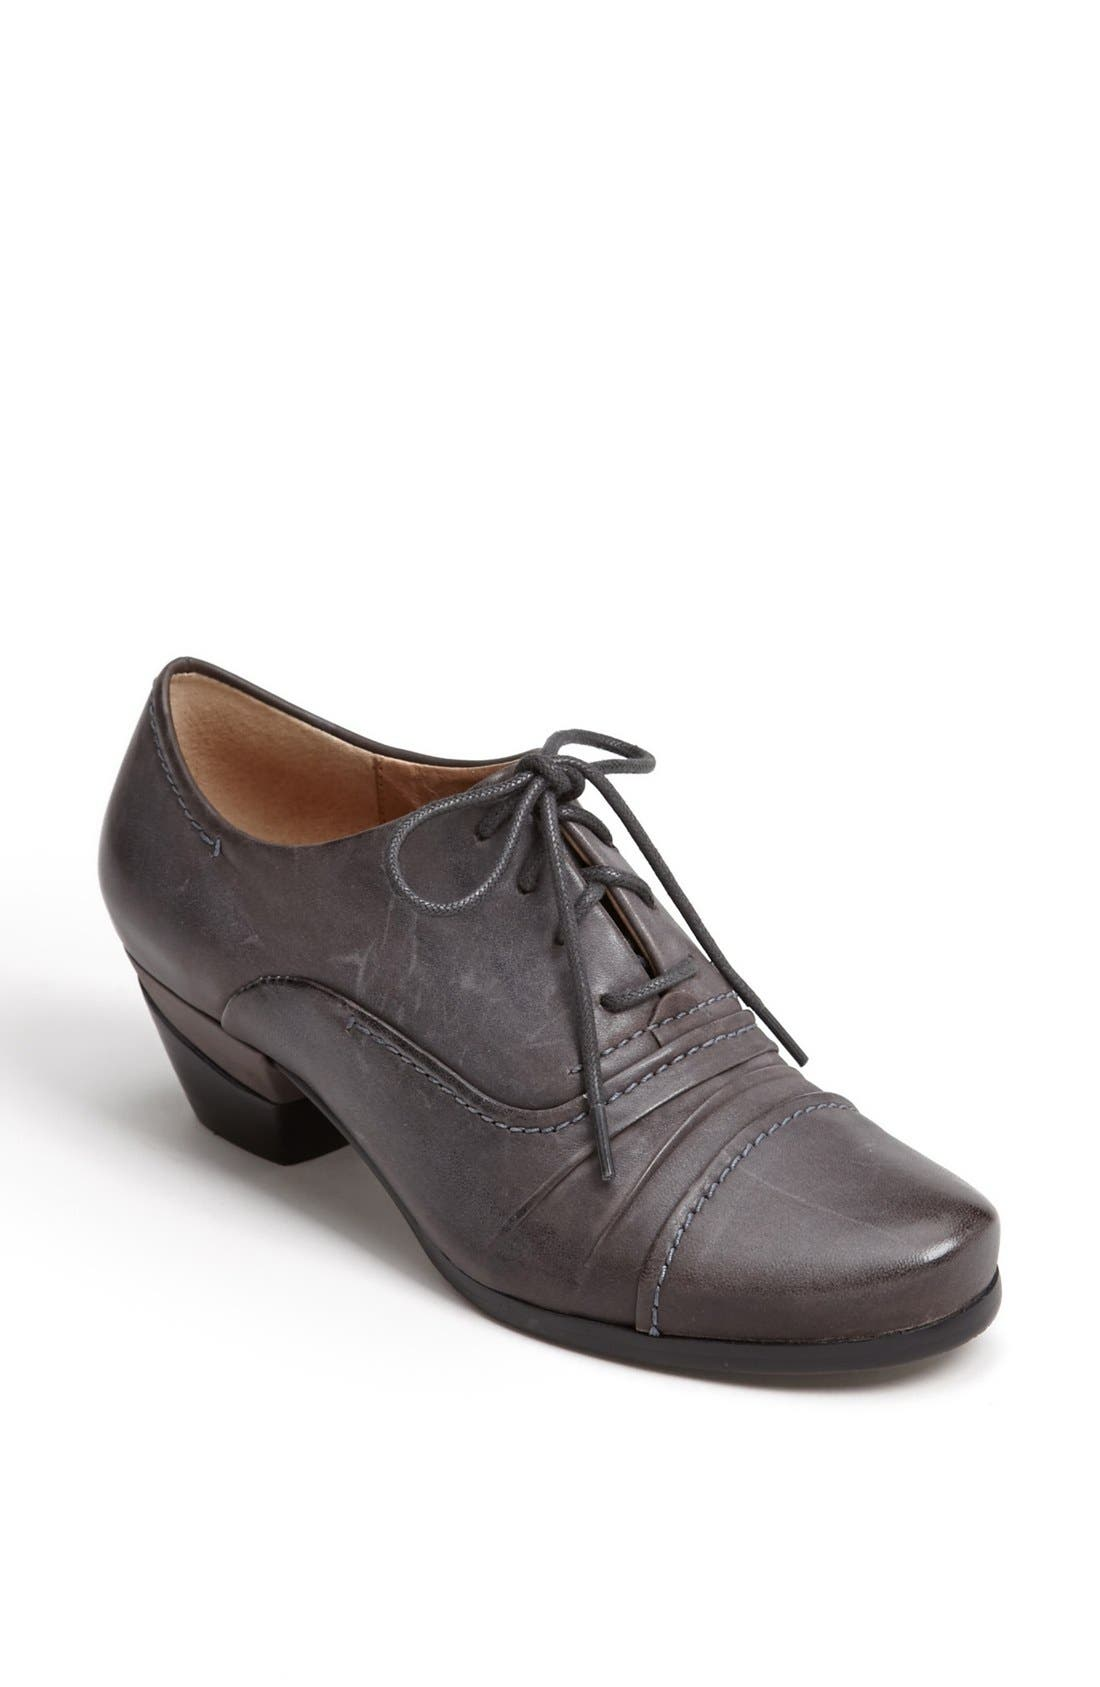 Alternate Image 1 Selected - Biala 'Keely' Cap Toe Oxford